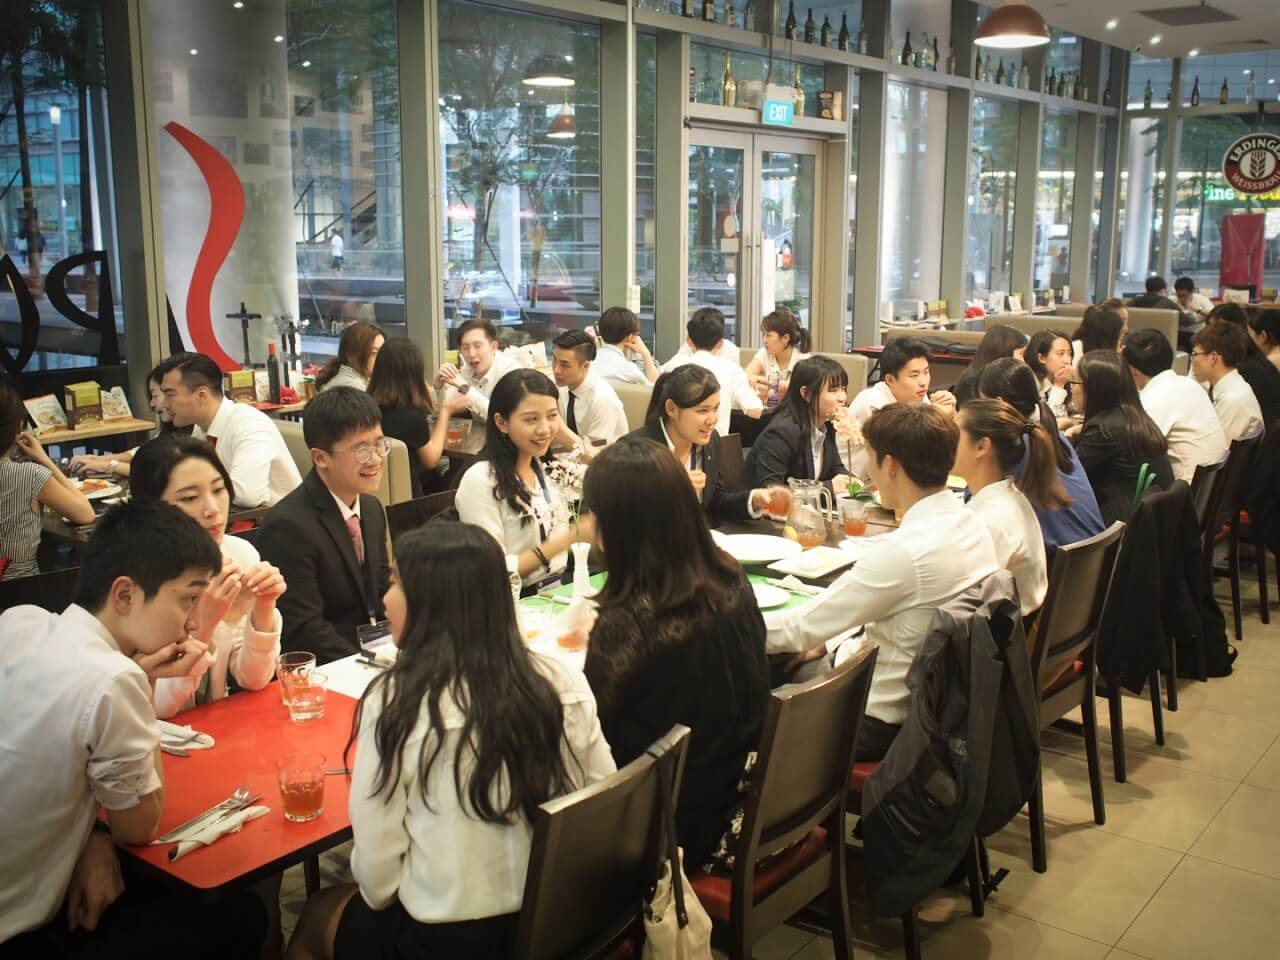 Group of students eating and talking at a restaurant